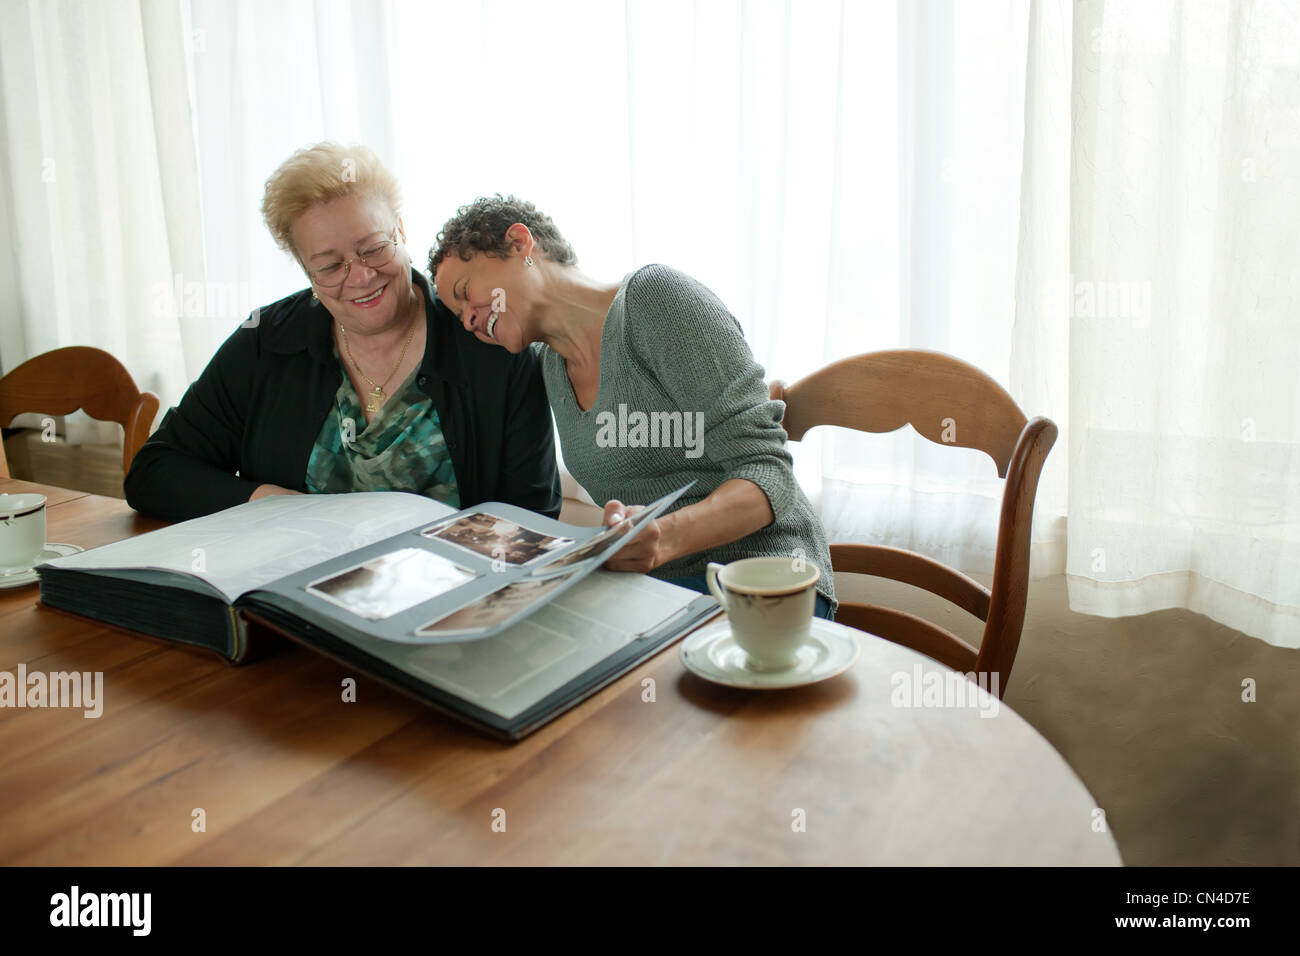 Mother and adult daughter looking through photo album - Stock Image